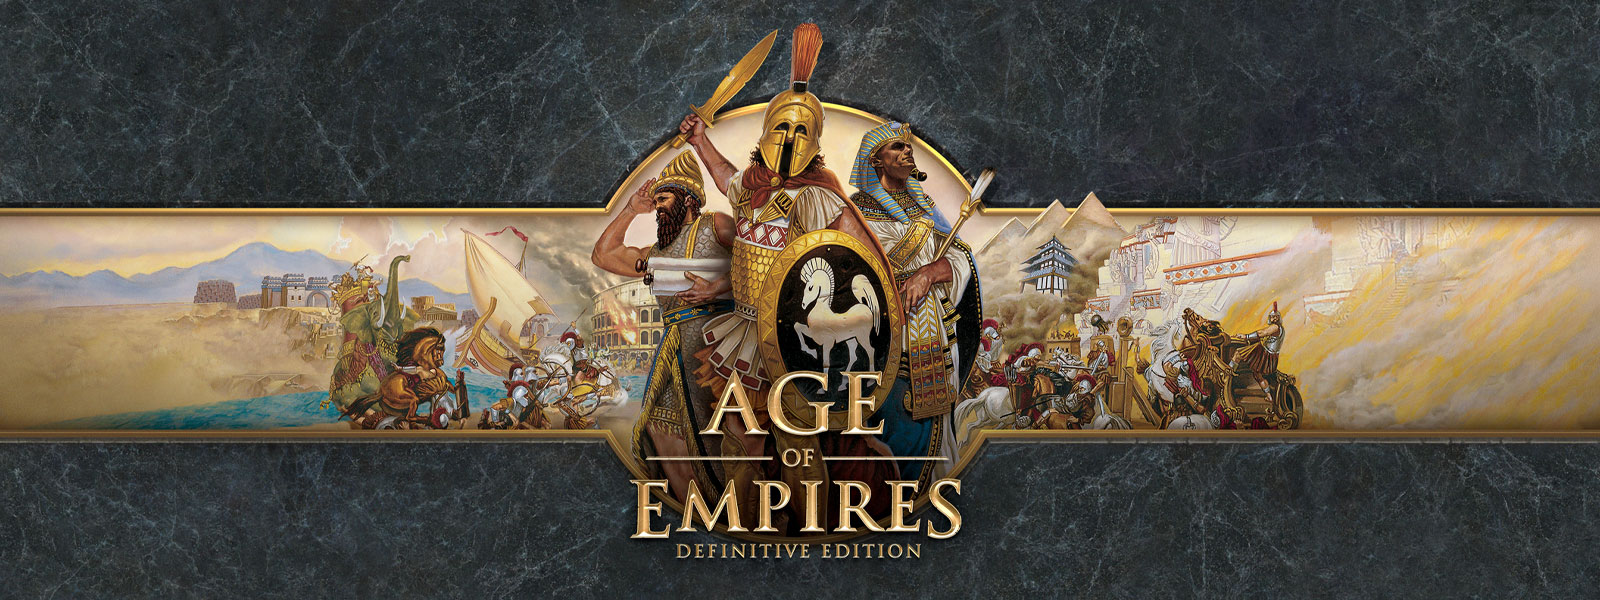 Announcing Age of Empires Definitive Edition logo on a grey slate background featuring war leaders and their armies